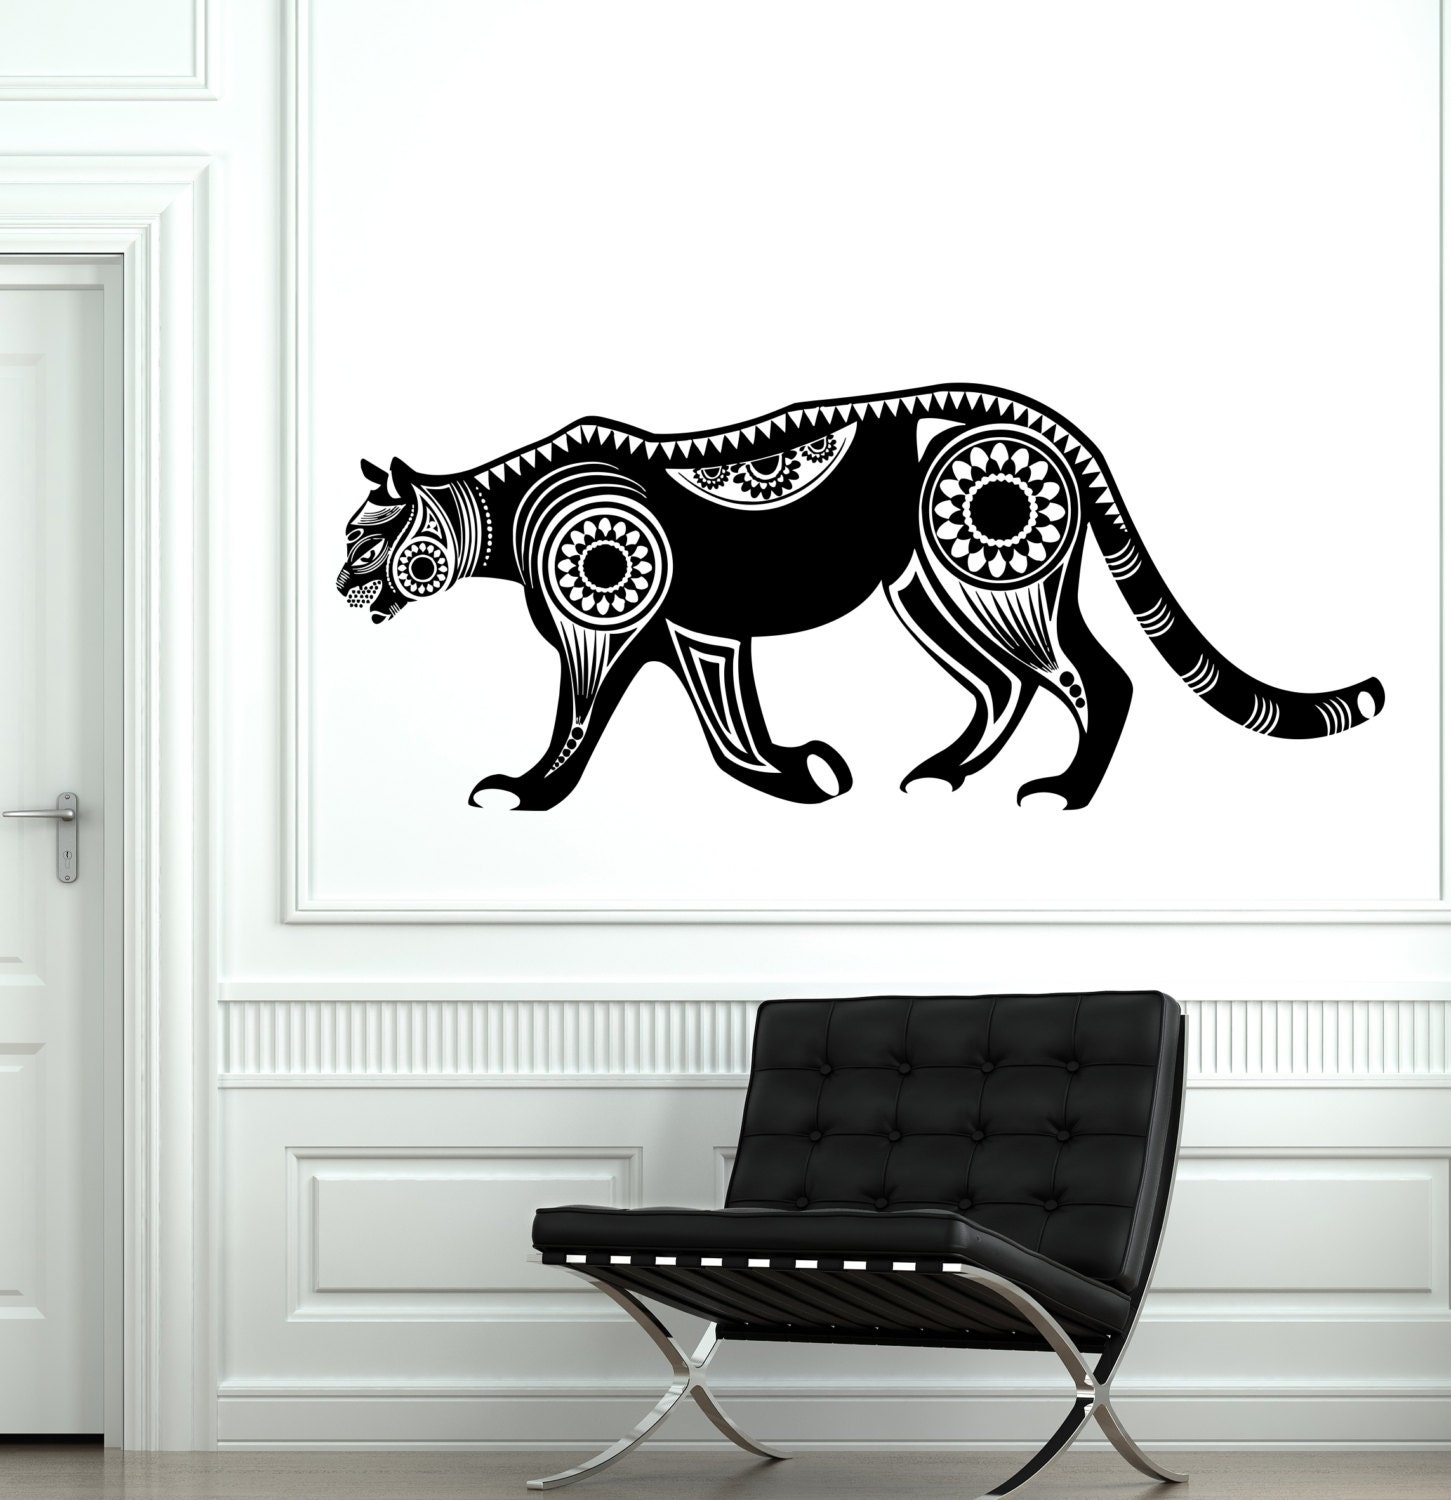 Black Panther Mural Of Wall Vinyl Panther Mountain Lion Animal Symbol Ornament Mural